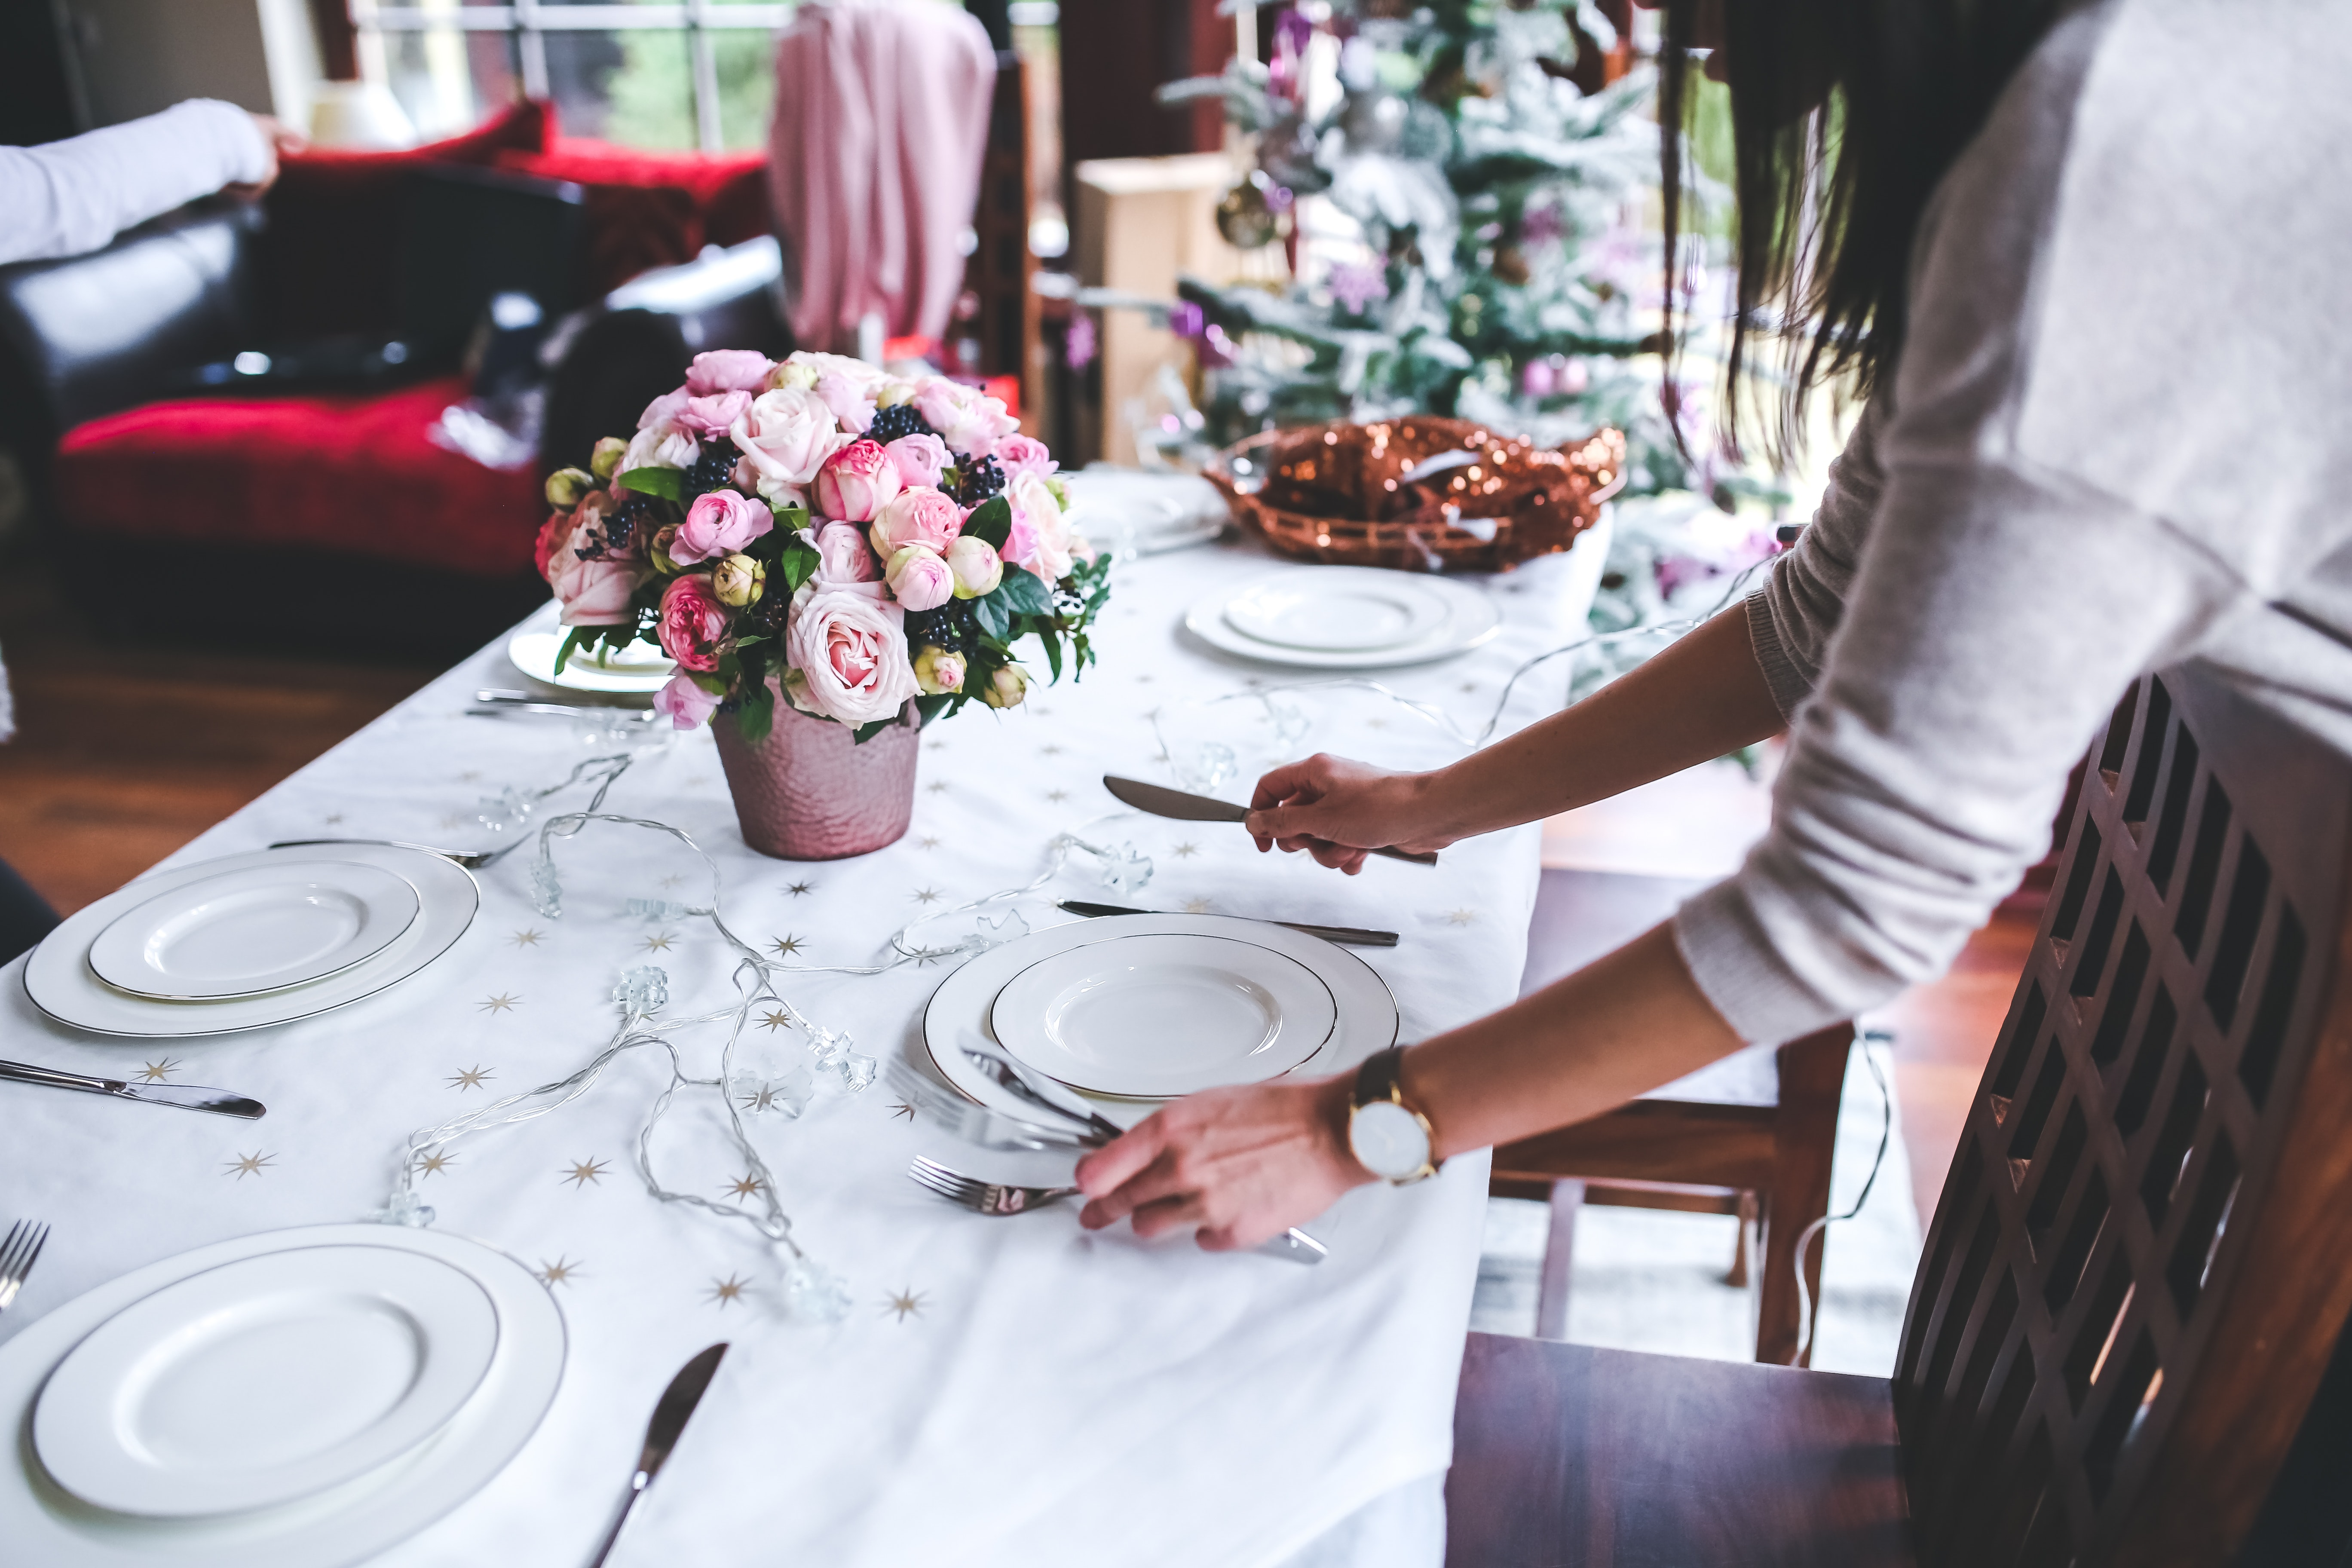 Women decorating table place settings